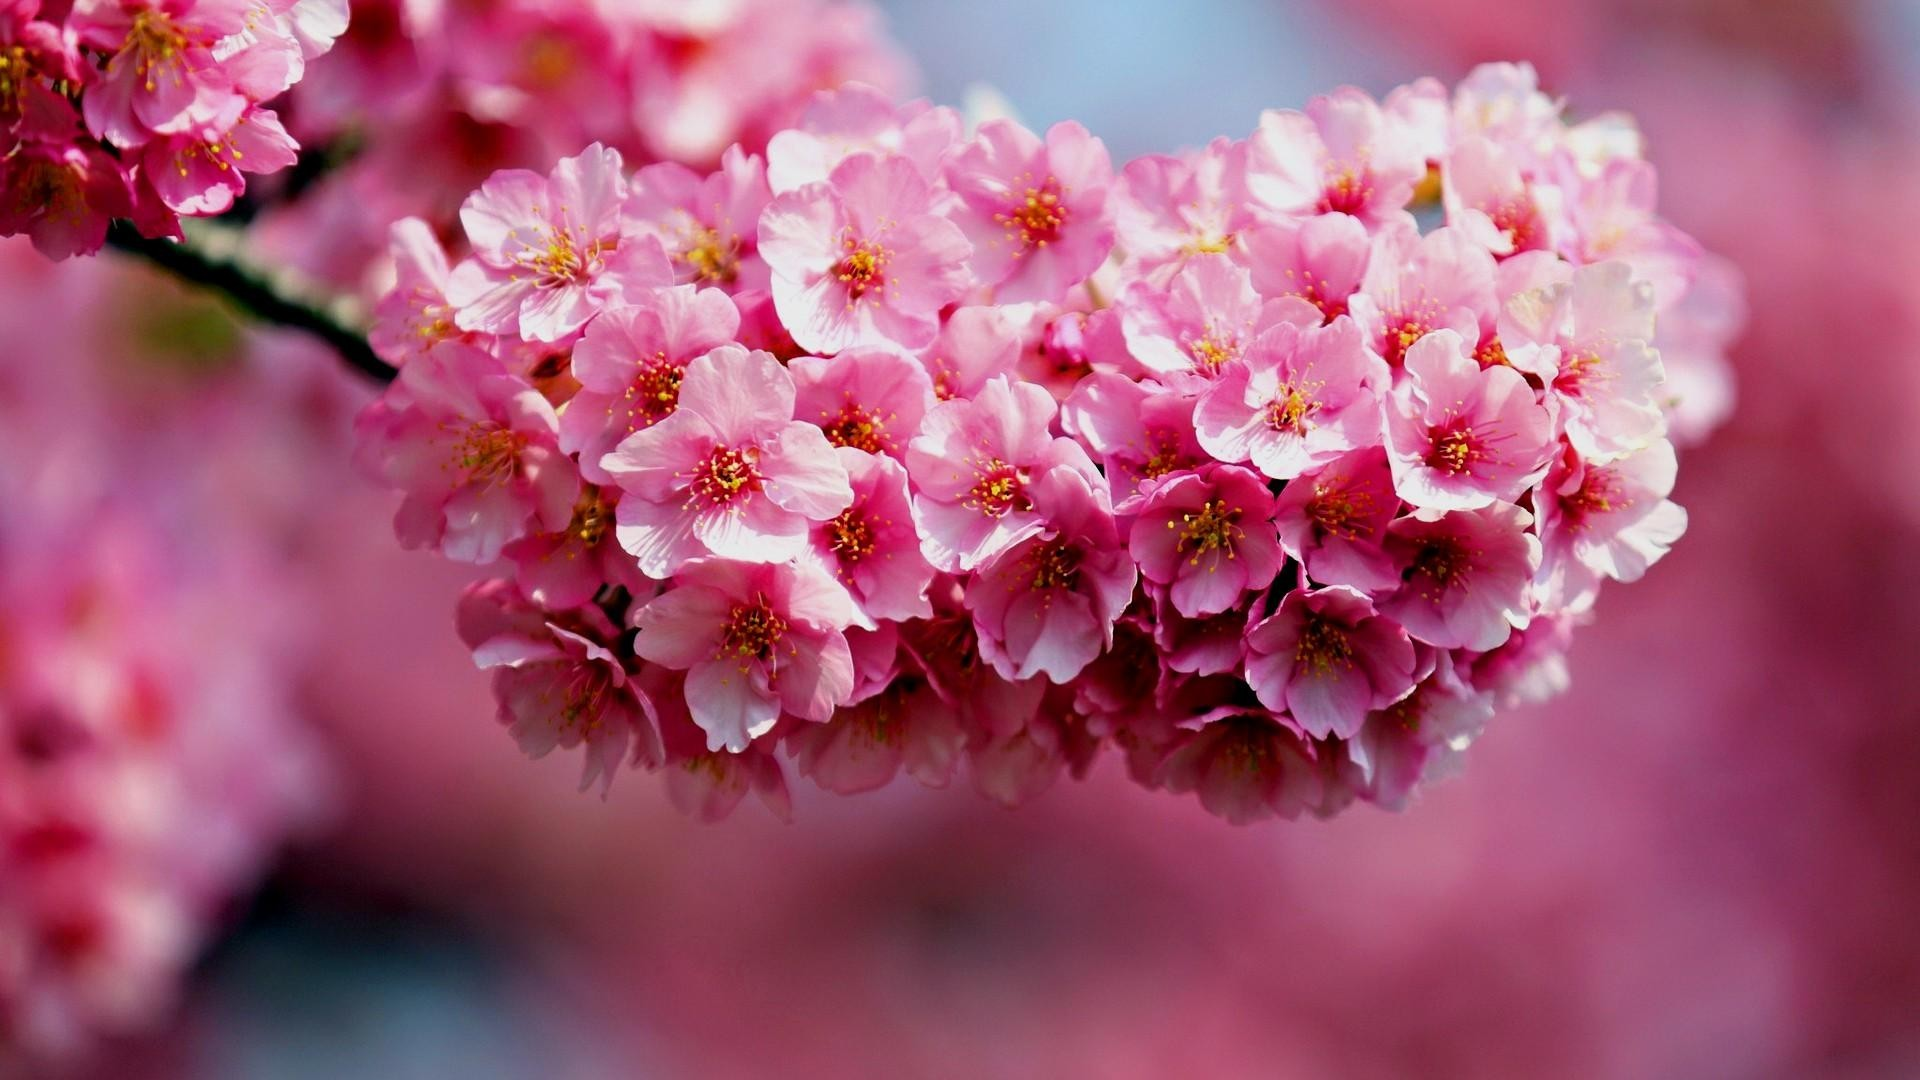 Pictures Of Flowers For Desktop Background ·① WallpaperTag